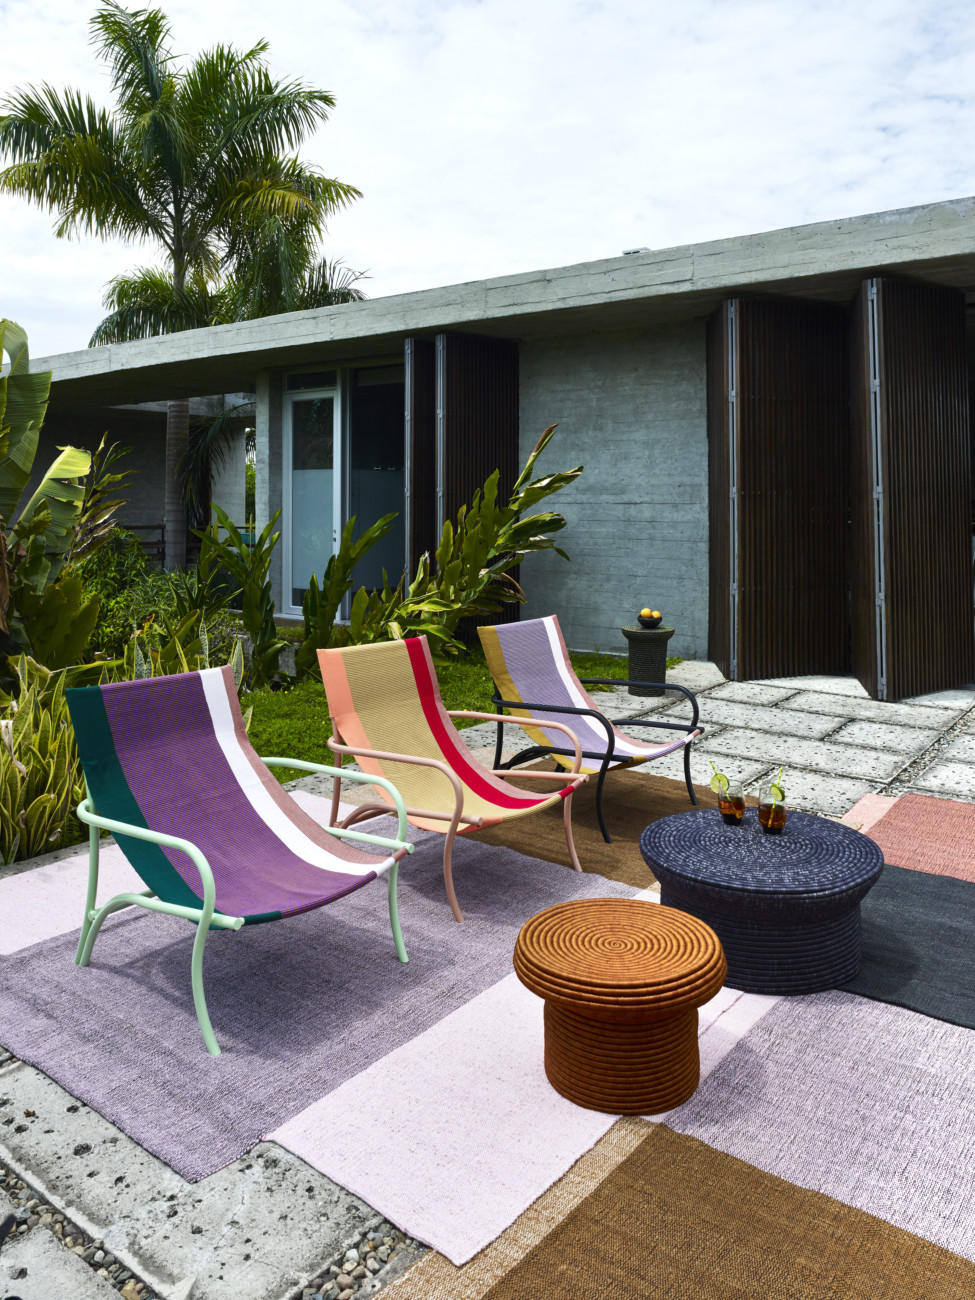 Well proportioned outdoor lounge chair, which the flowing lines of the metal frame lend elegance. The material and colour of the covers convey an uncomplicated cheerfulness.